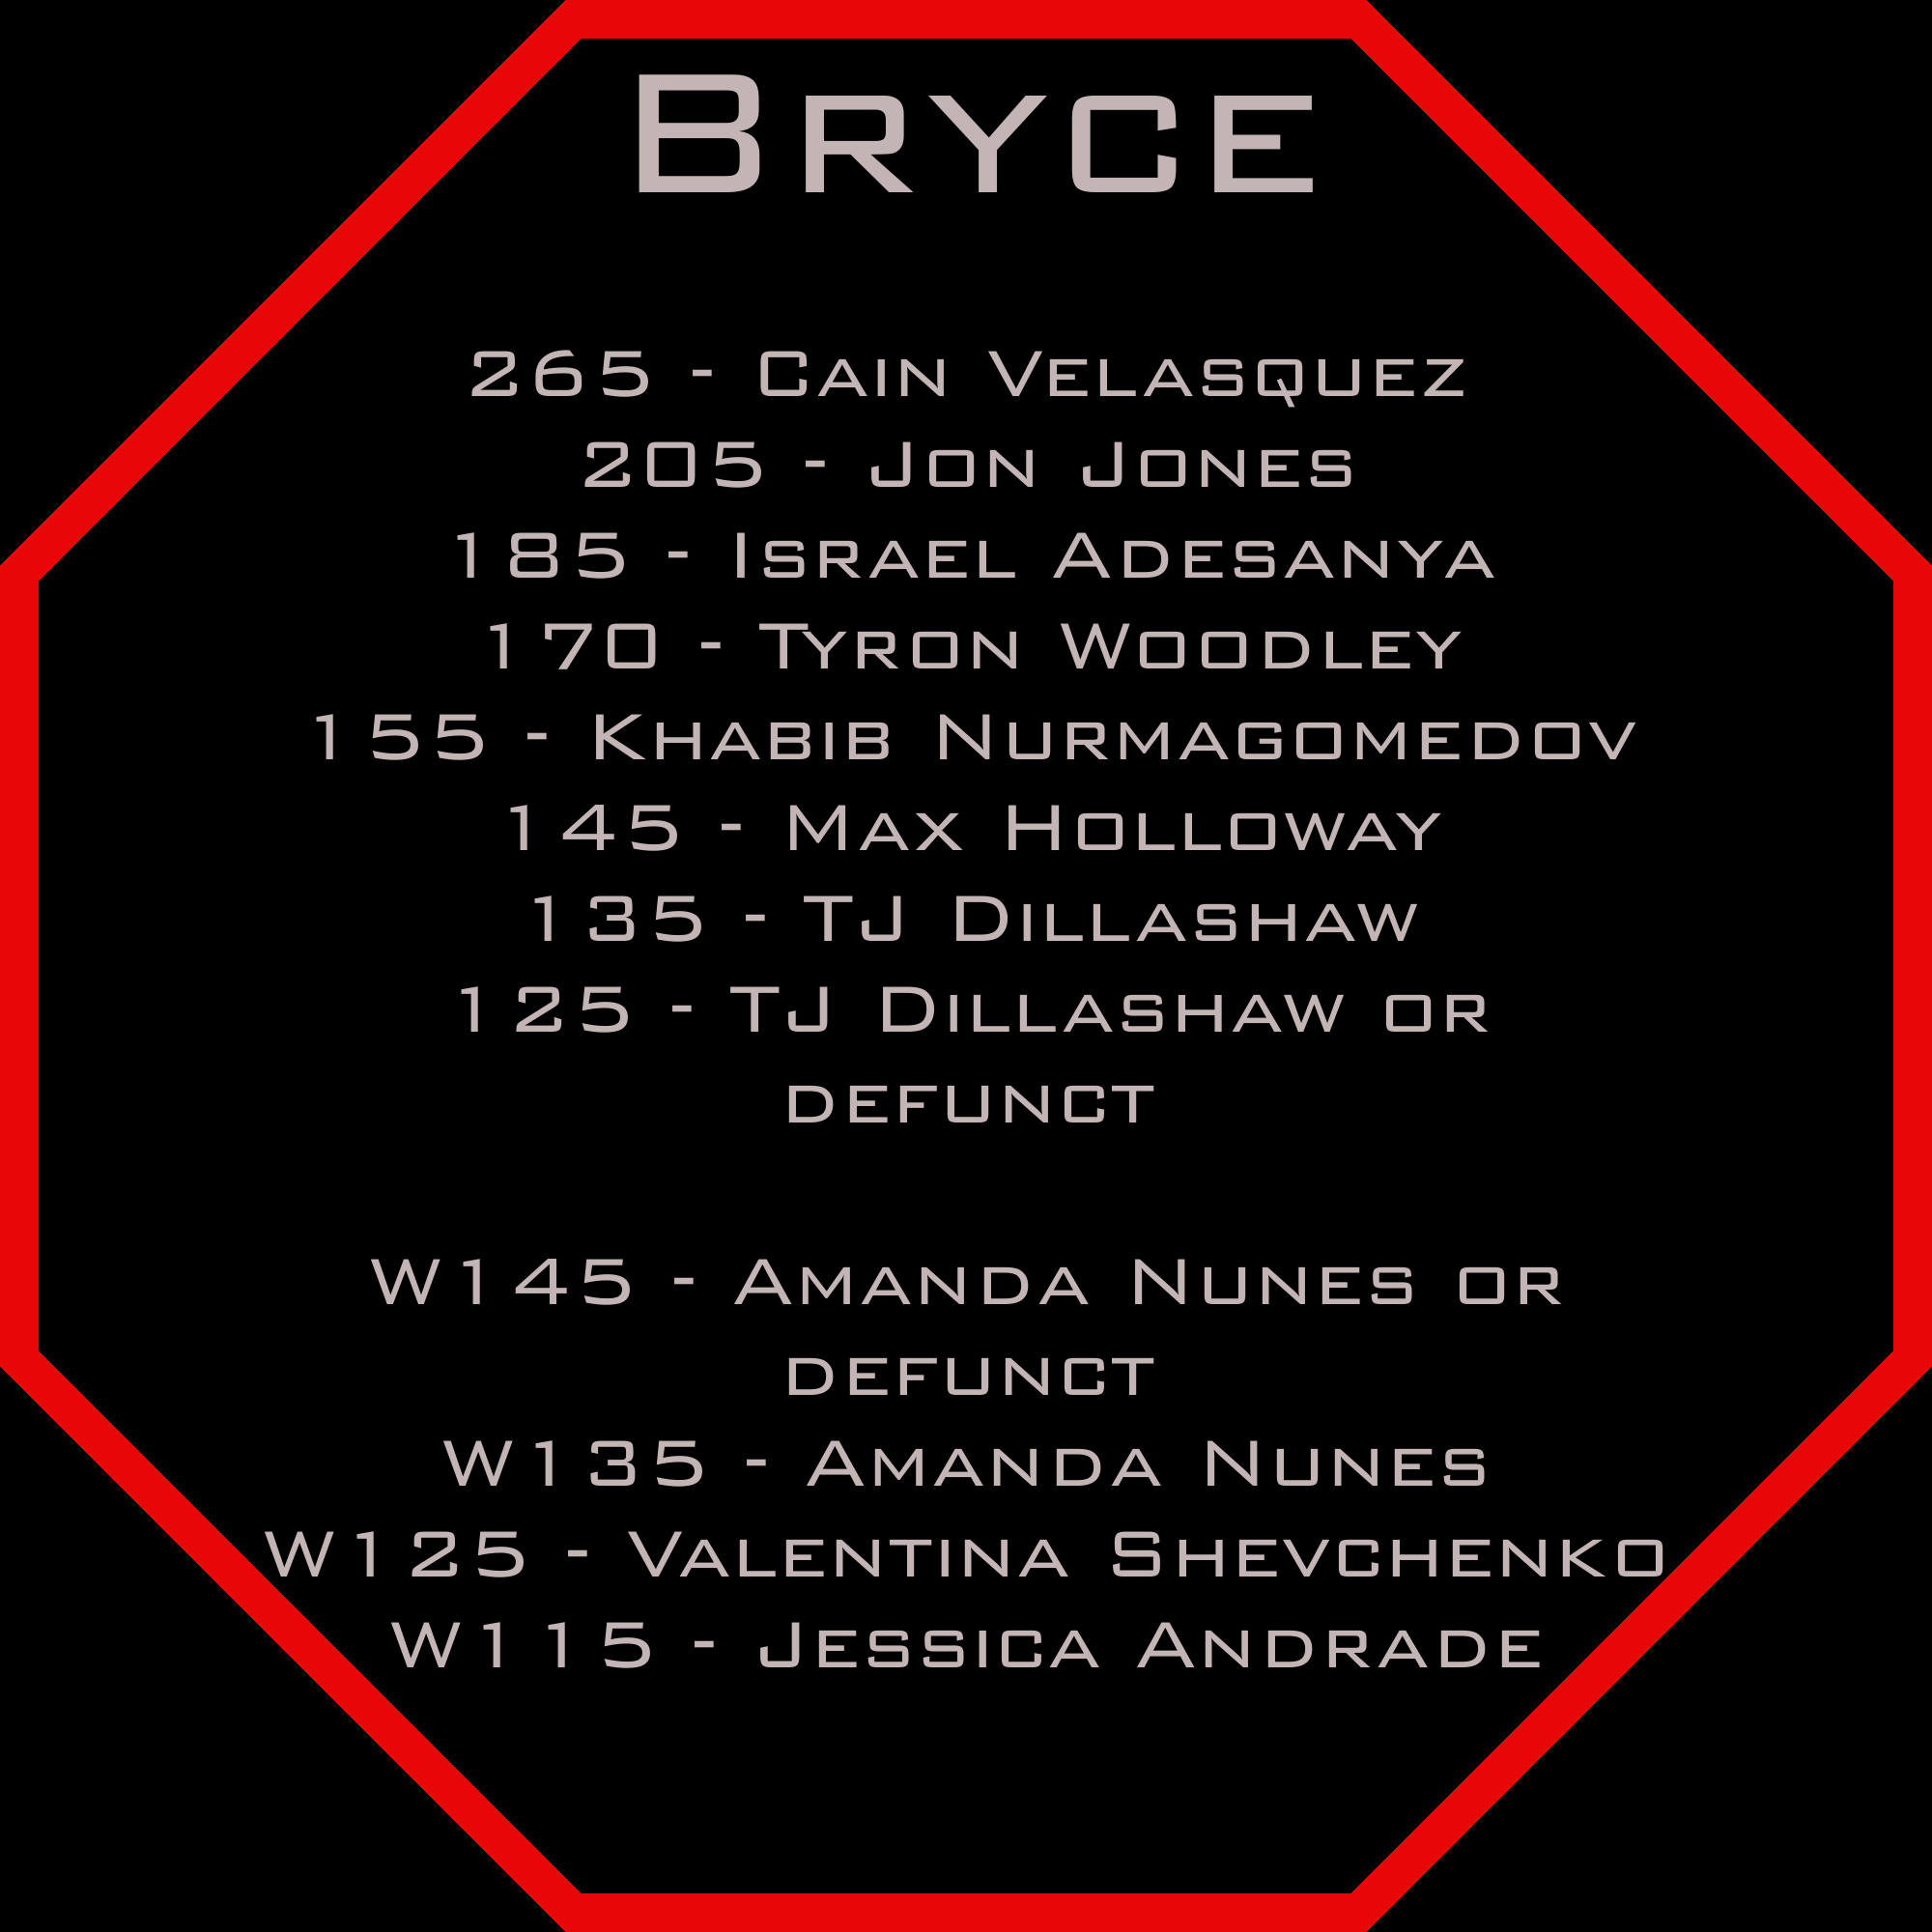 Bryce 2019.png